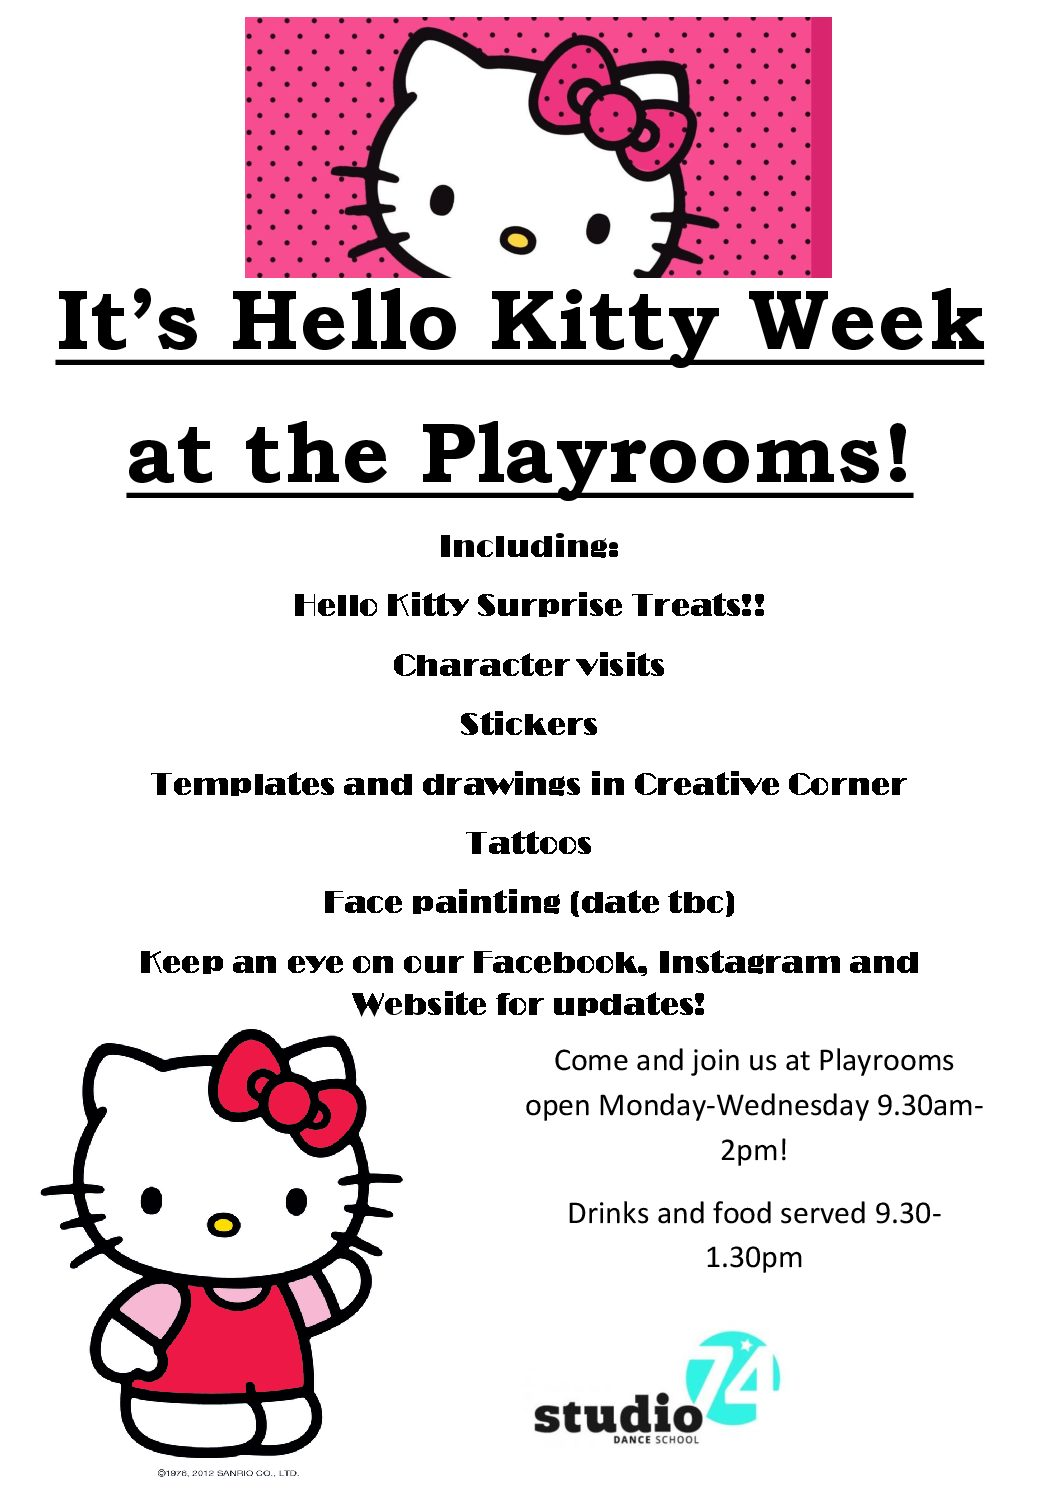 Hello Kitty at The Playrooms